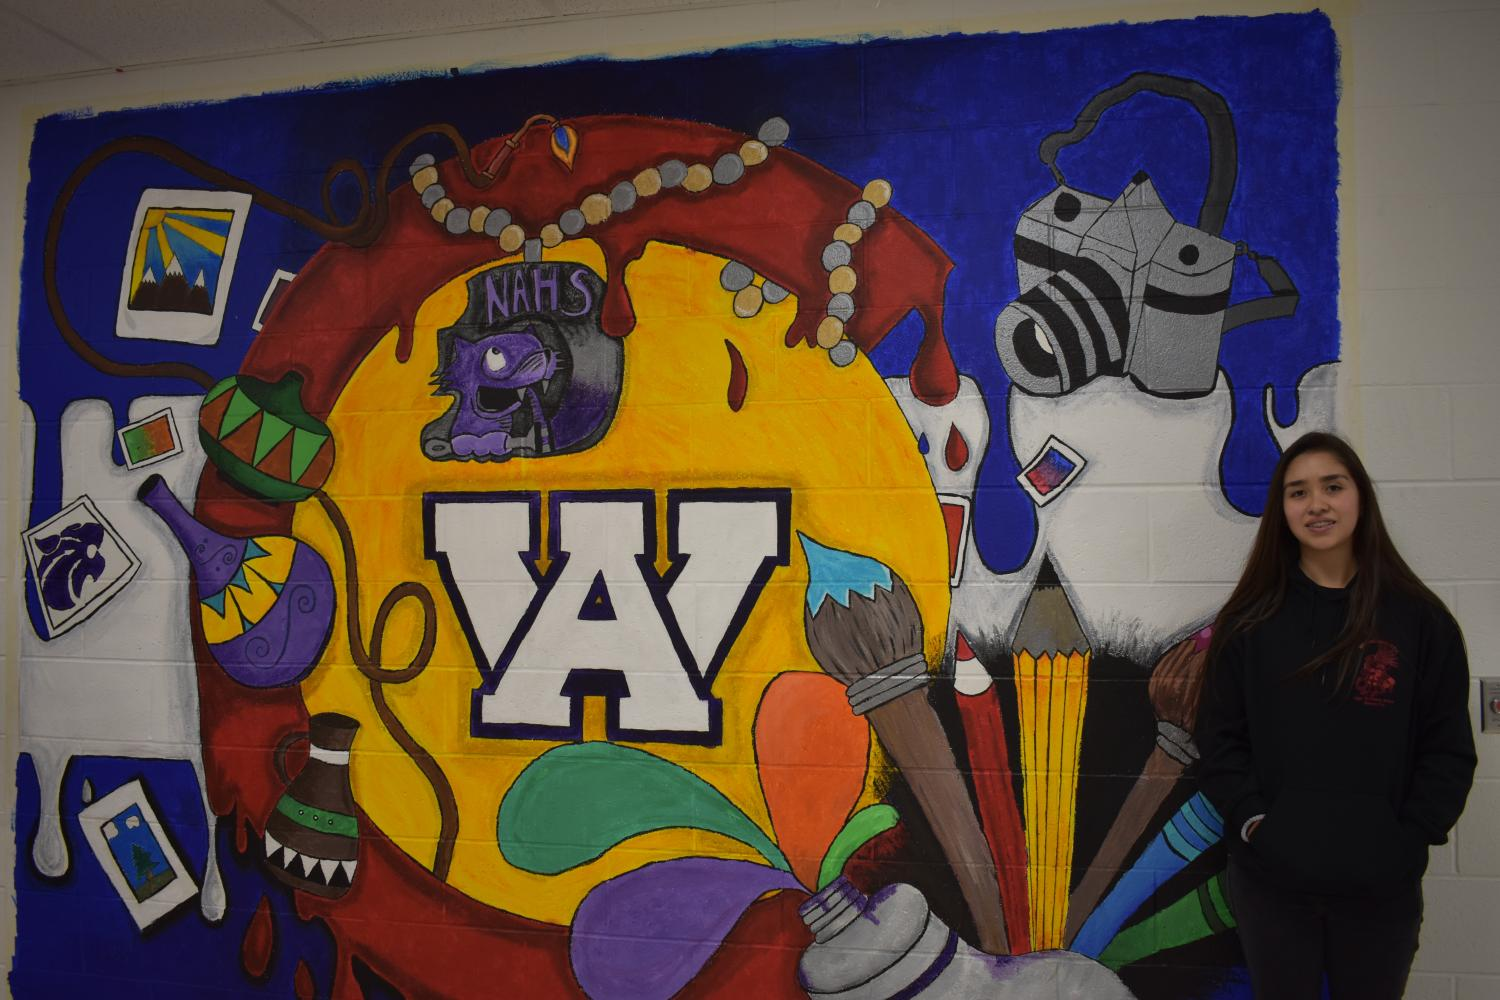 Larysa+Medina%2C+sophomore%2C+stands+in+front+of+the+mural+that+she+designed+with+National+Art+Honors+Society.+